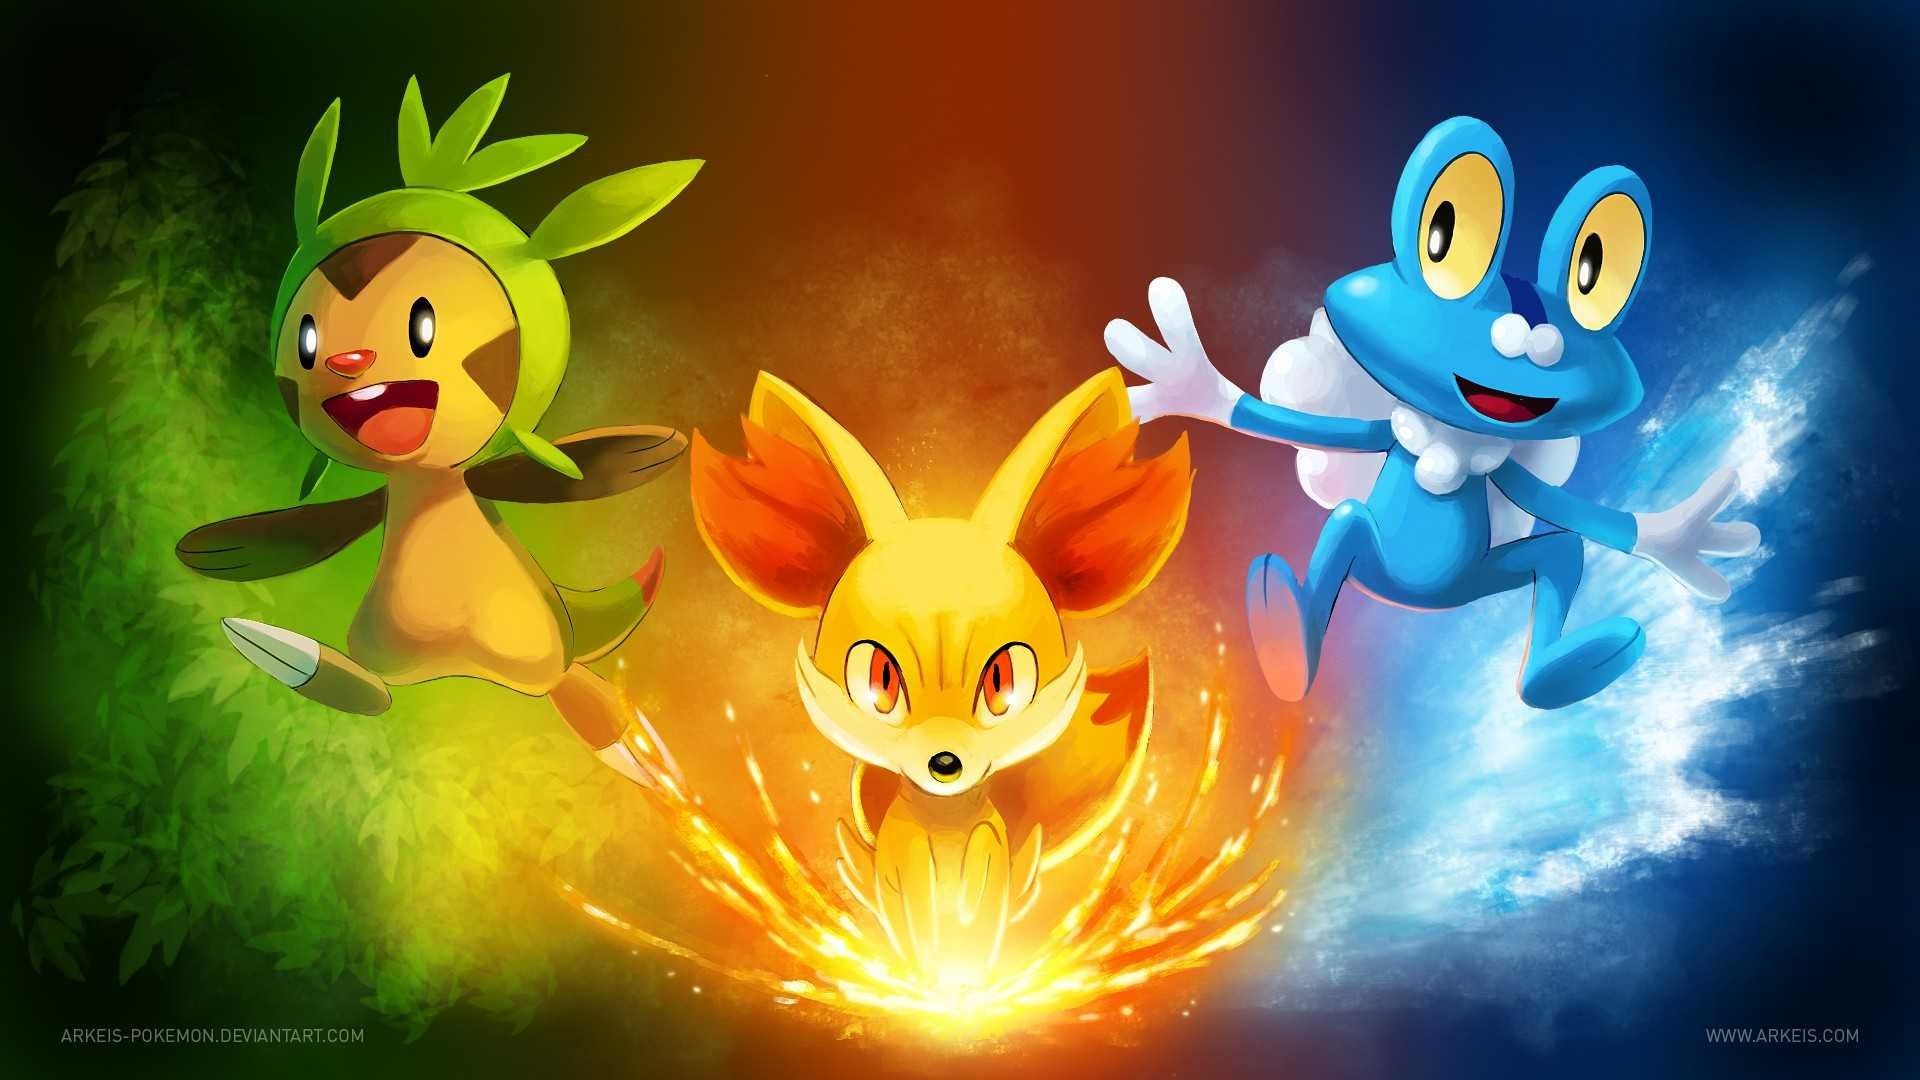 Res: 1920x1080, Cute Pokemon Wallpaper Hd High Quality Of Iphone